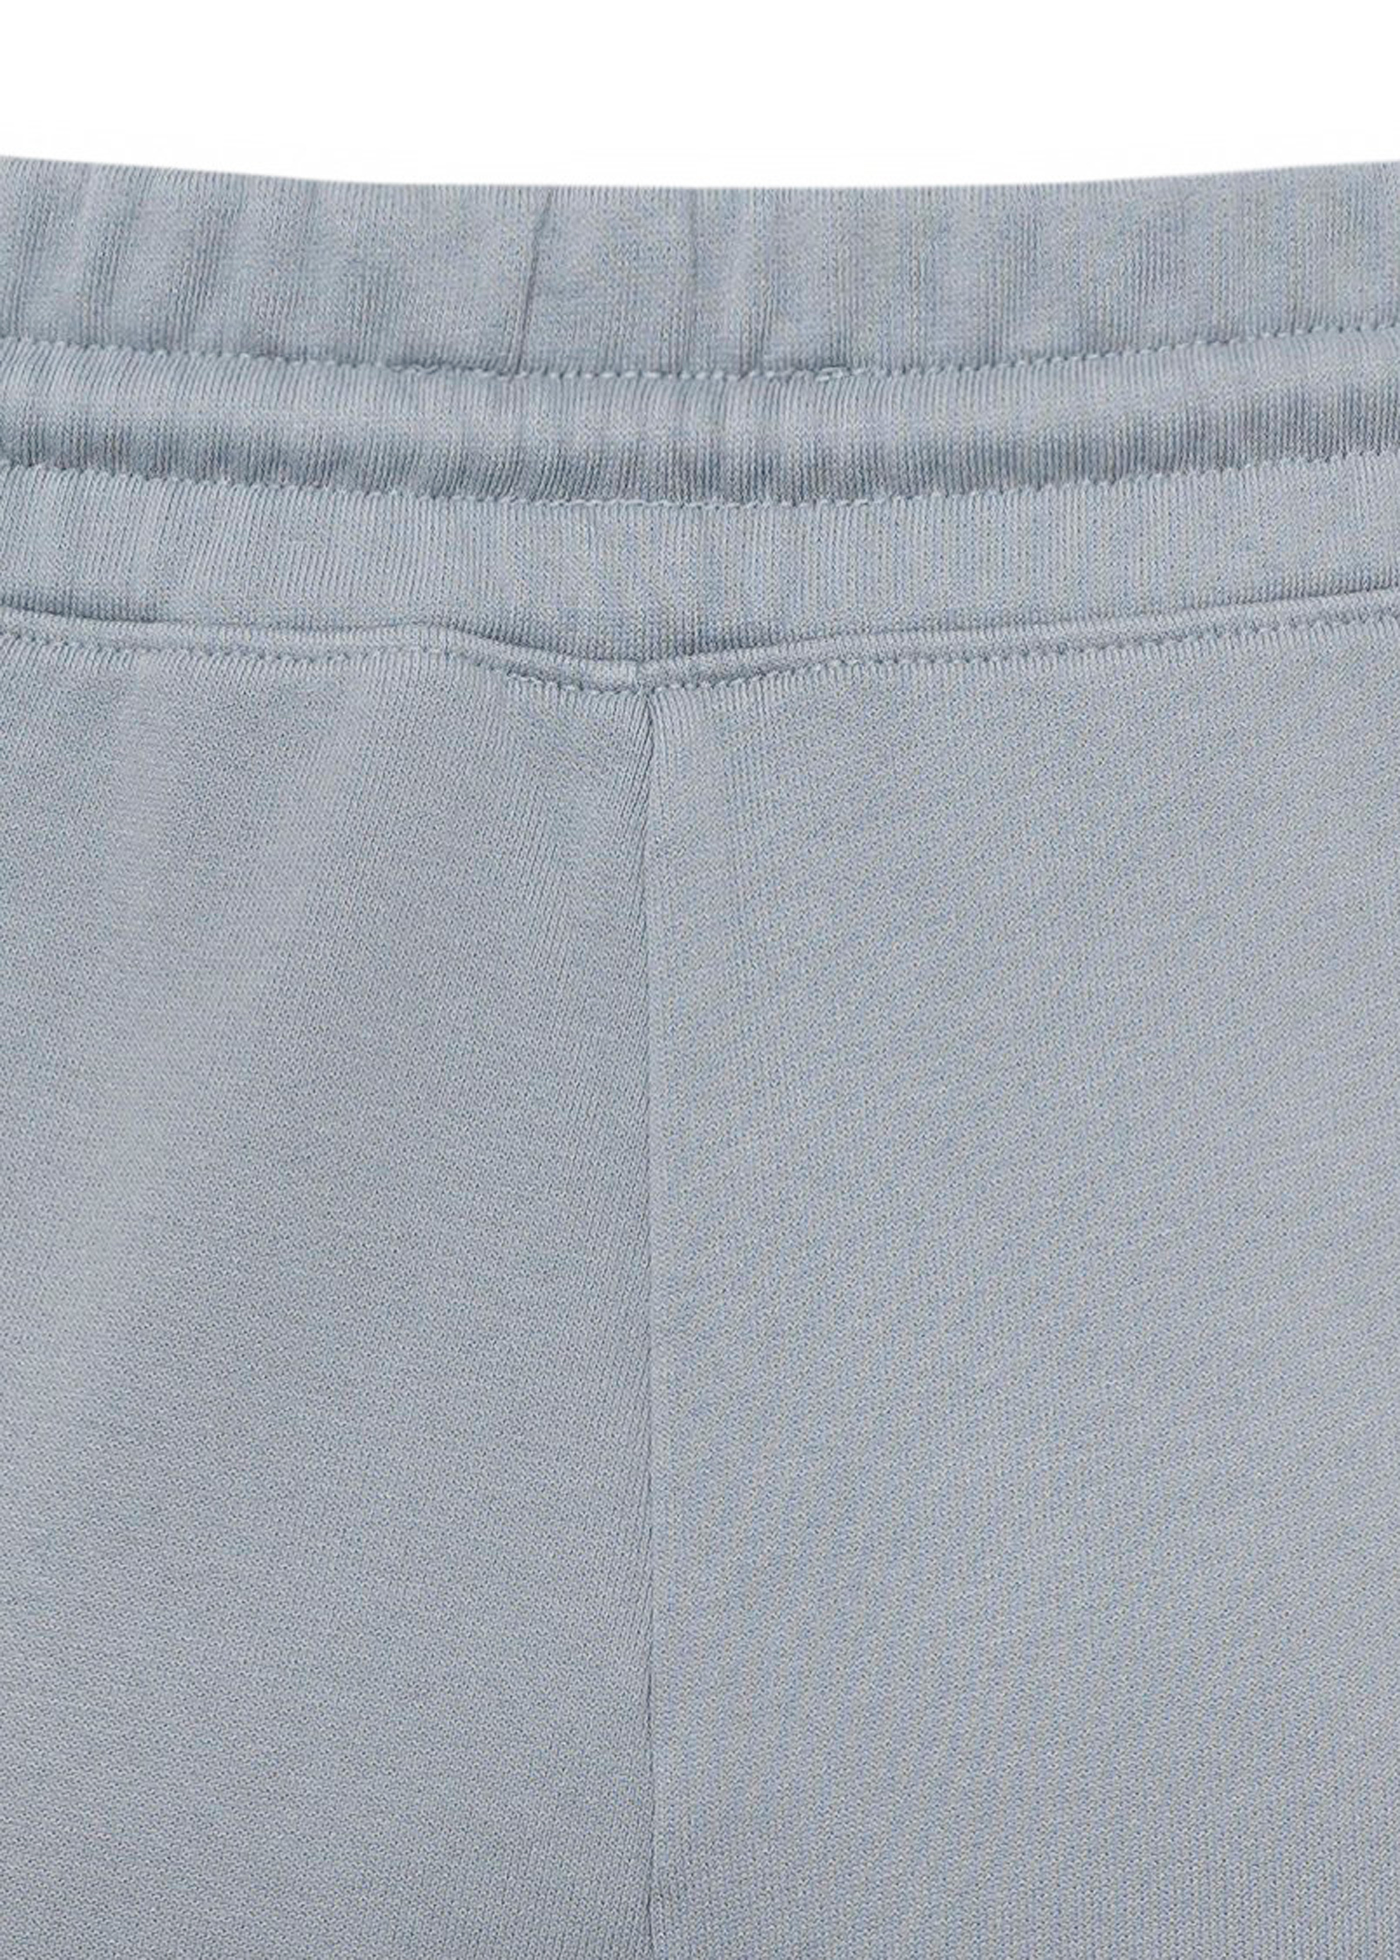 CROPPED PANT / CROPPED PANT image number 3